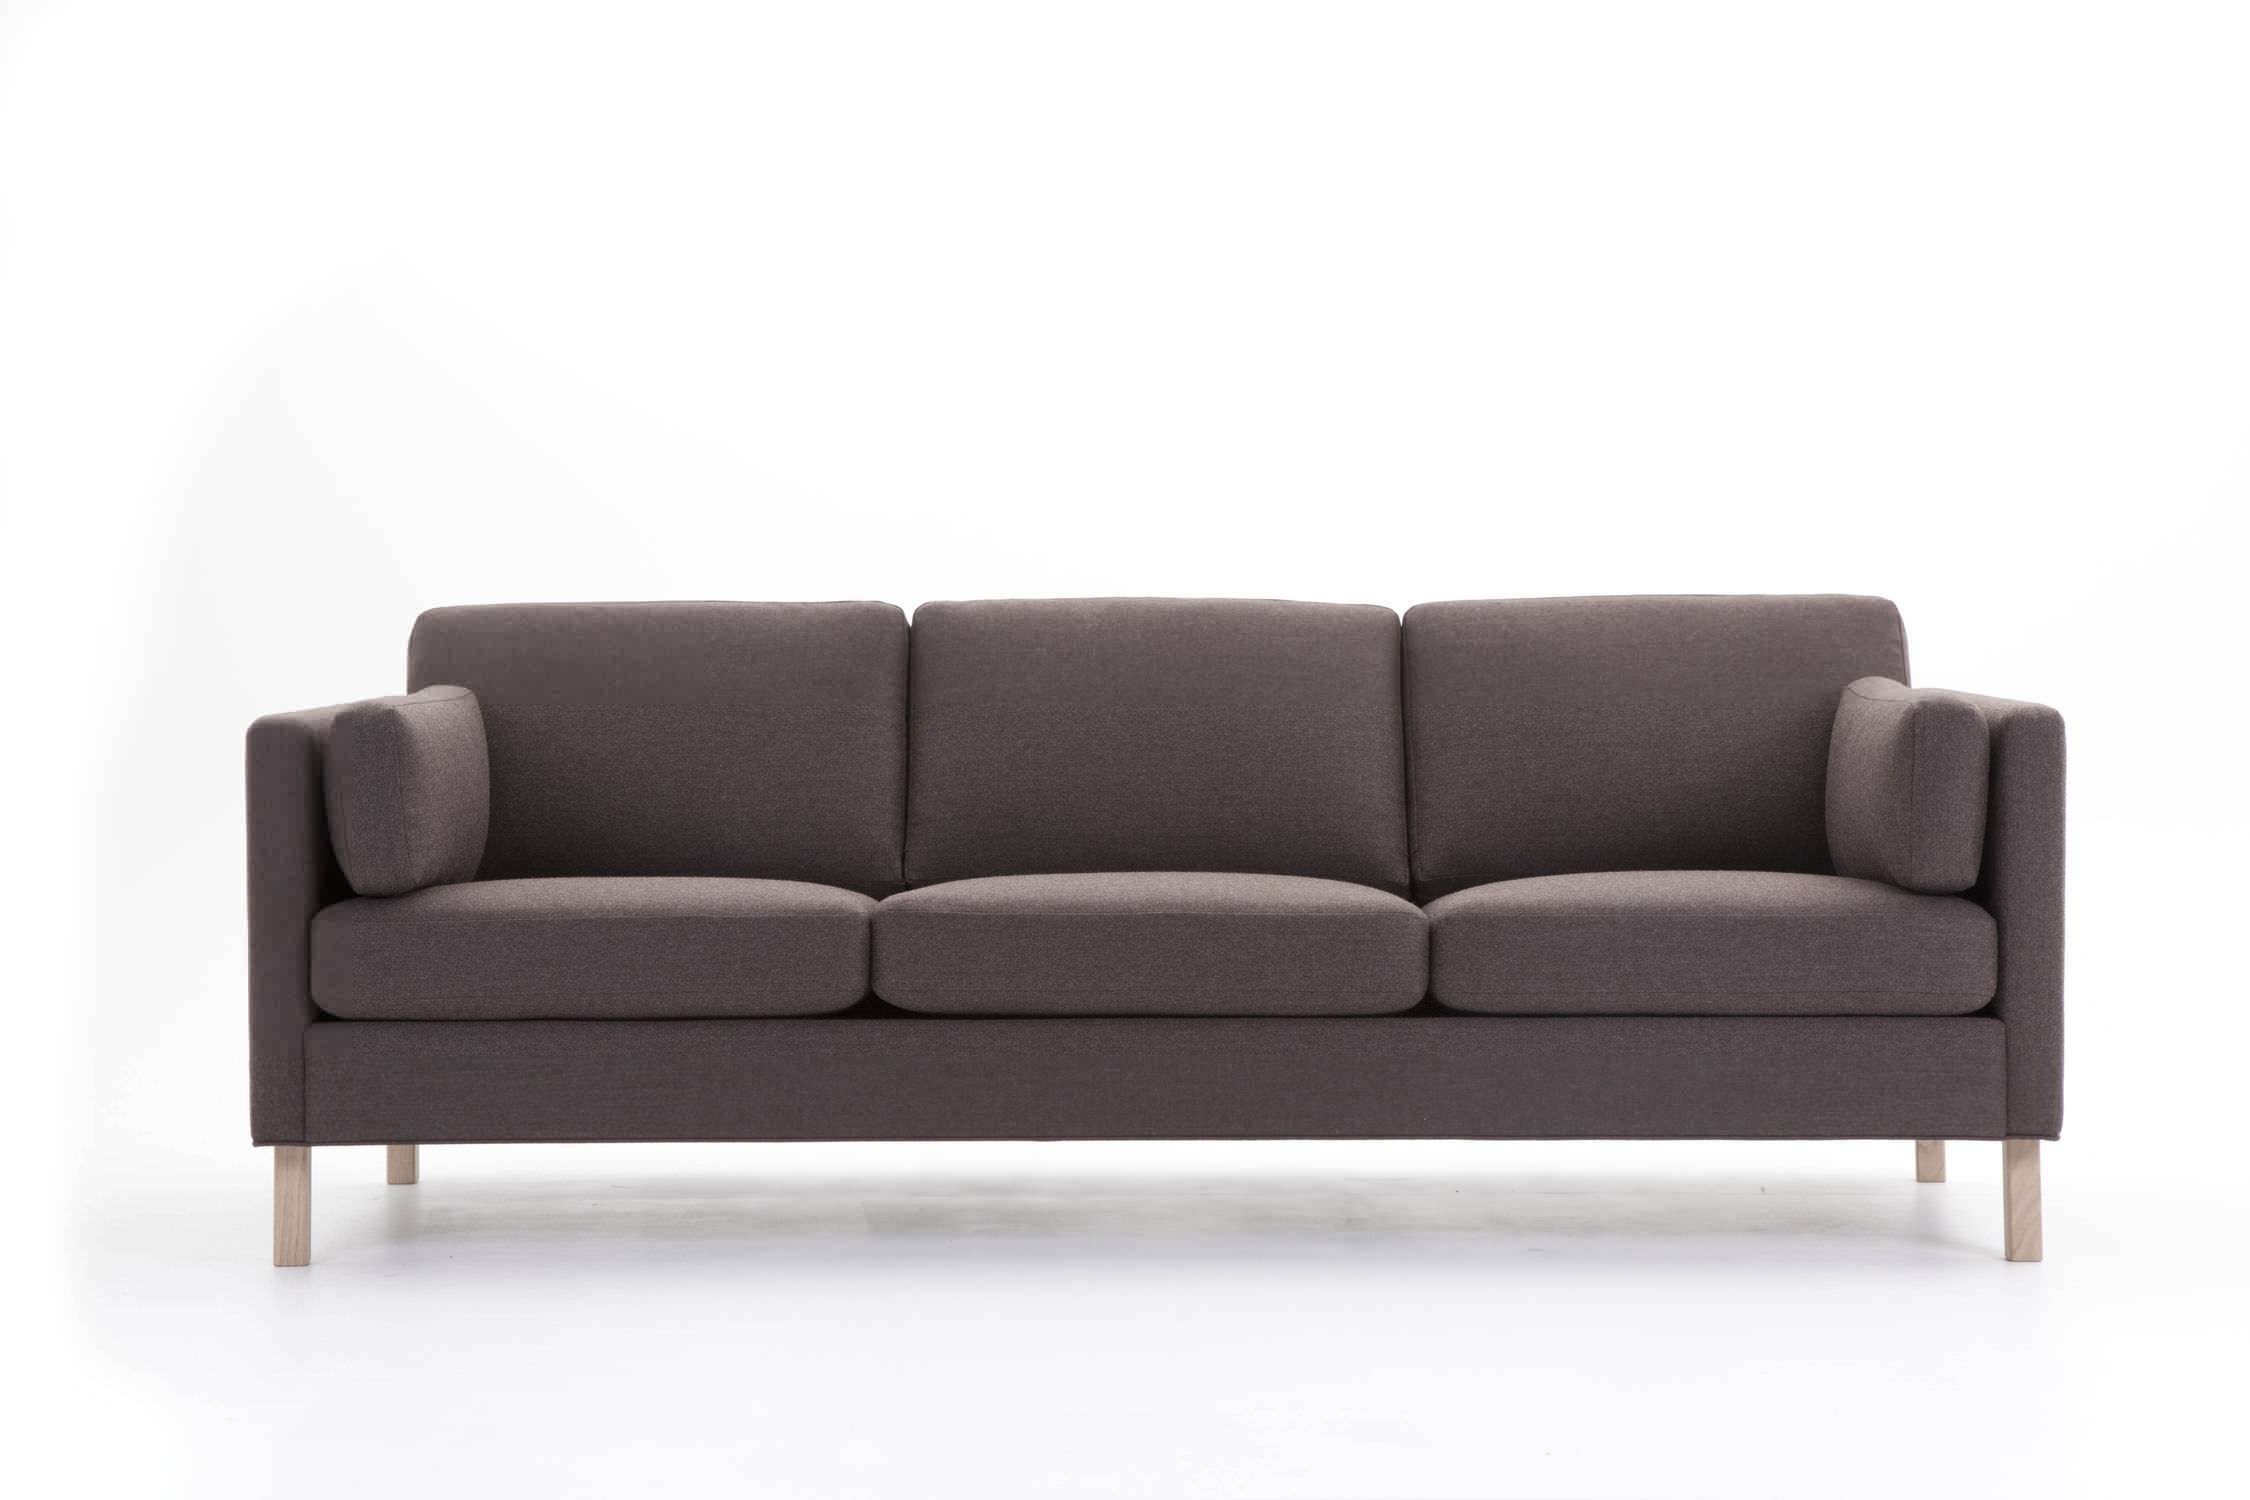 30 Best Contemporary Fabric Sofas